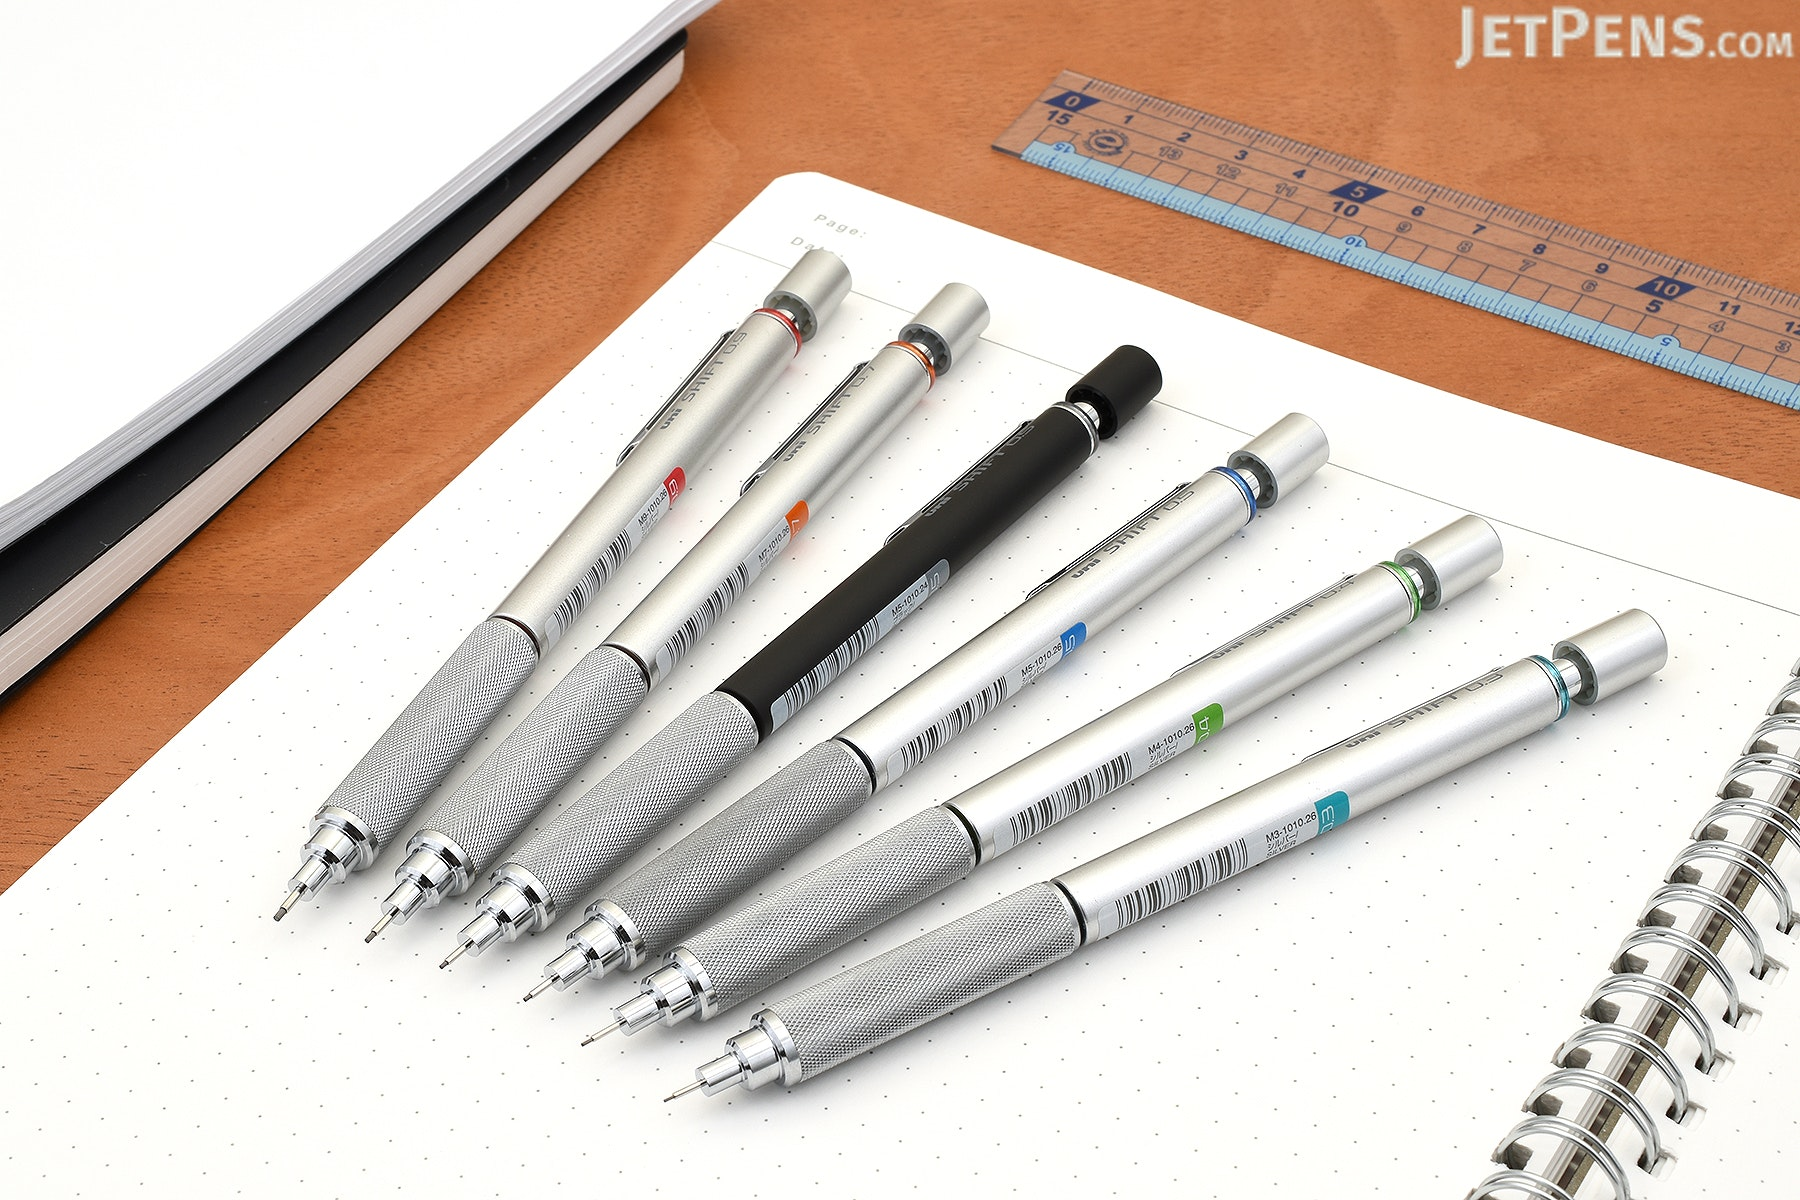 Uni Shift Pipe Lock Drafting Pencil - 0.5 mm - Silver Body with Blue Accent - UNI M51010.26